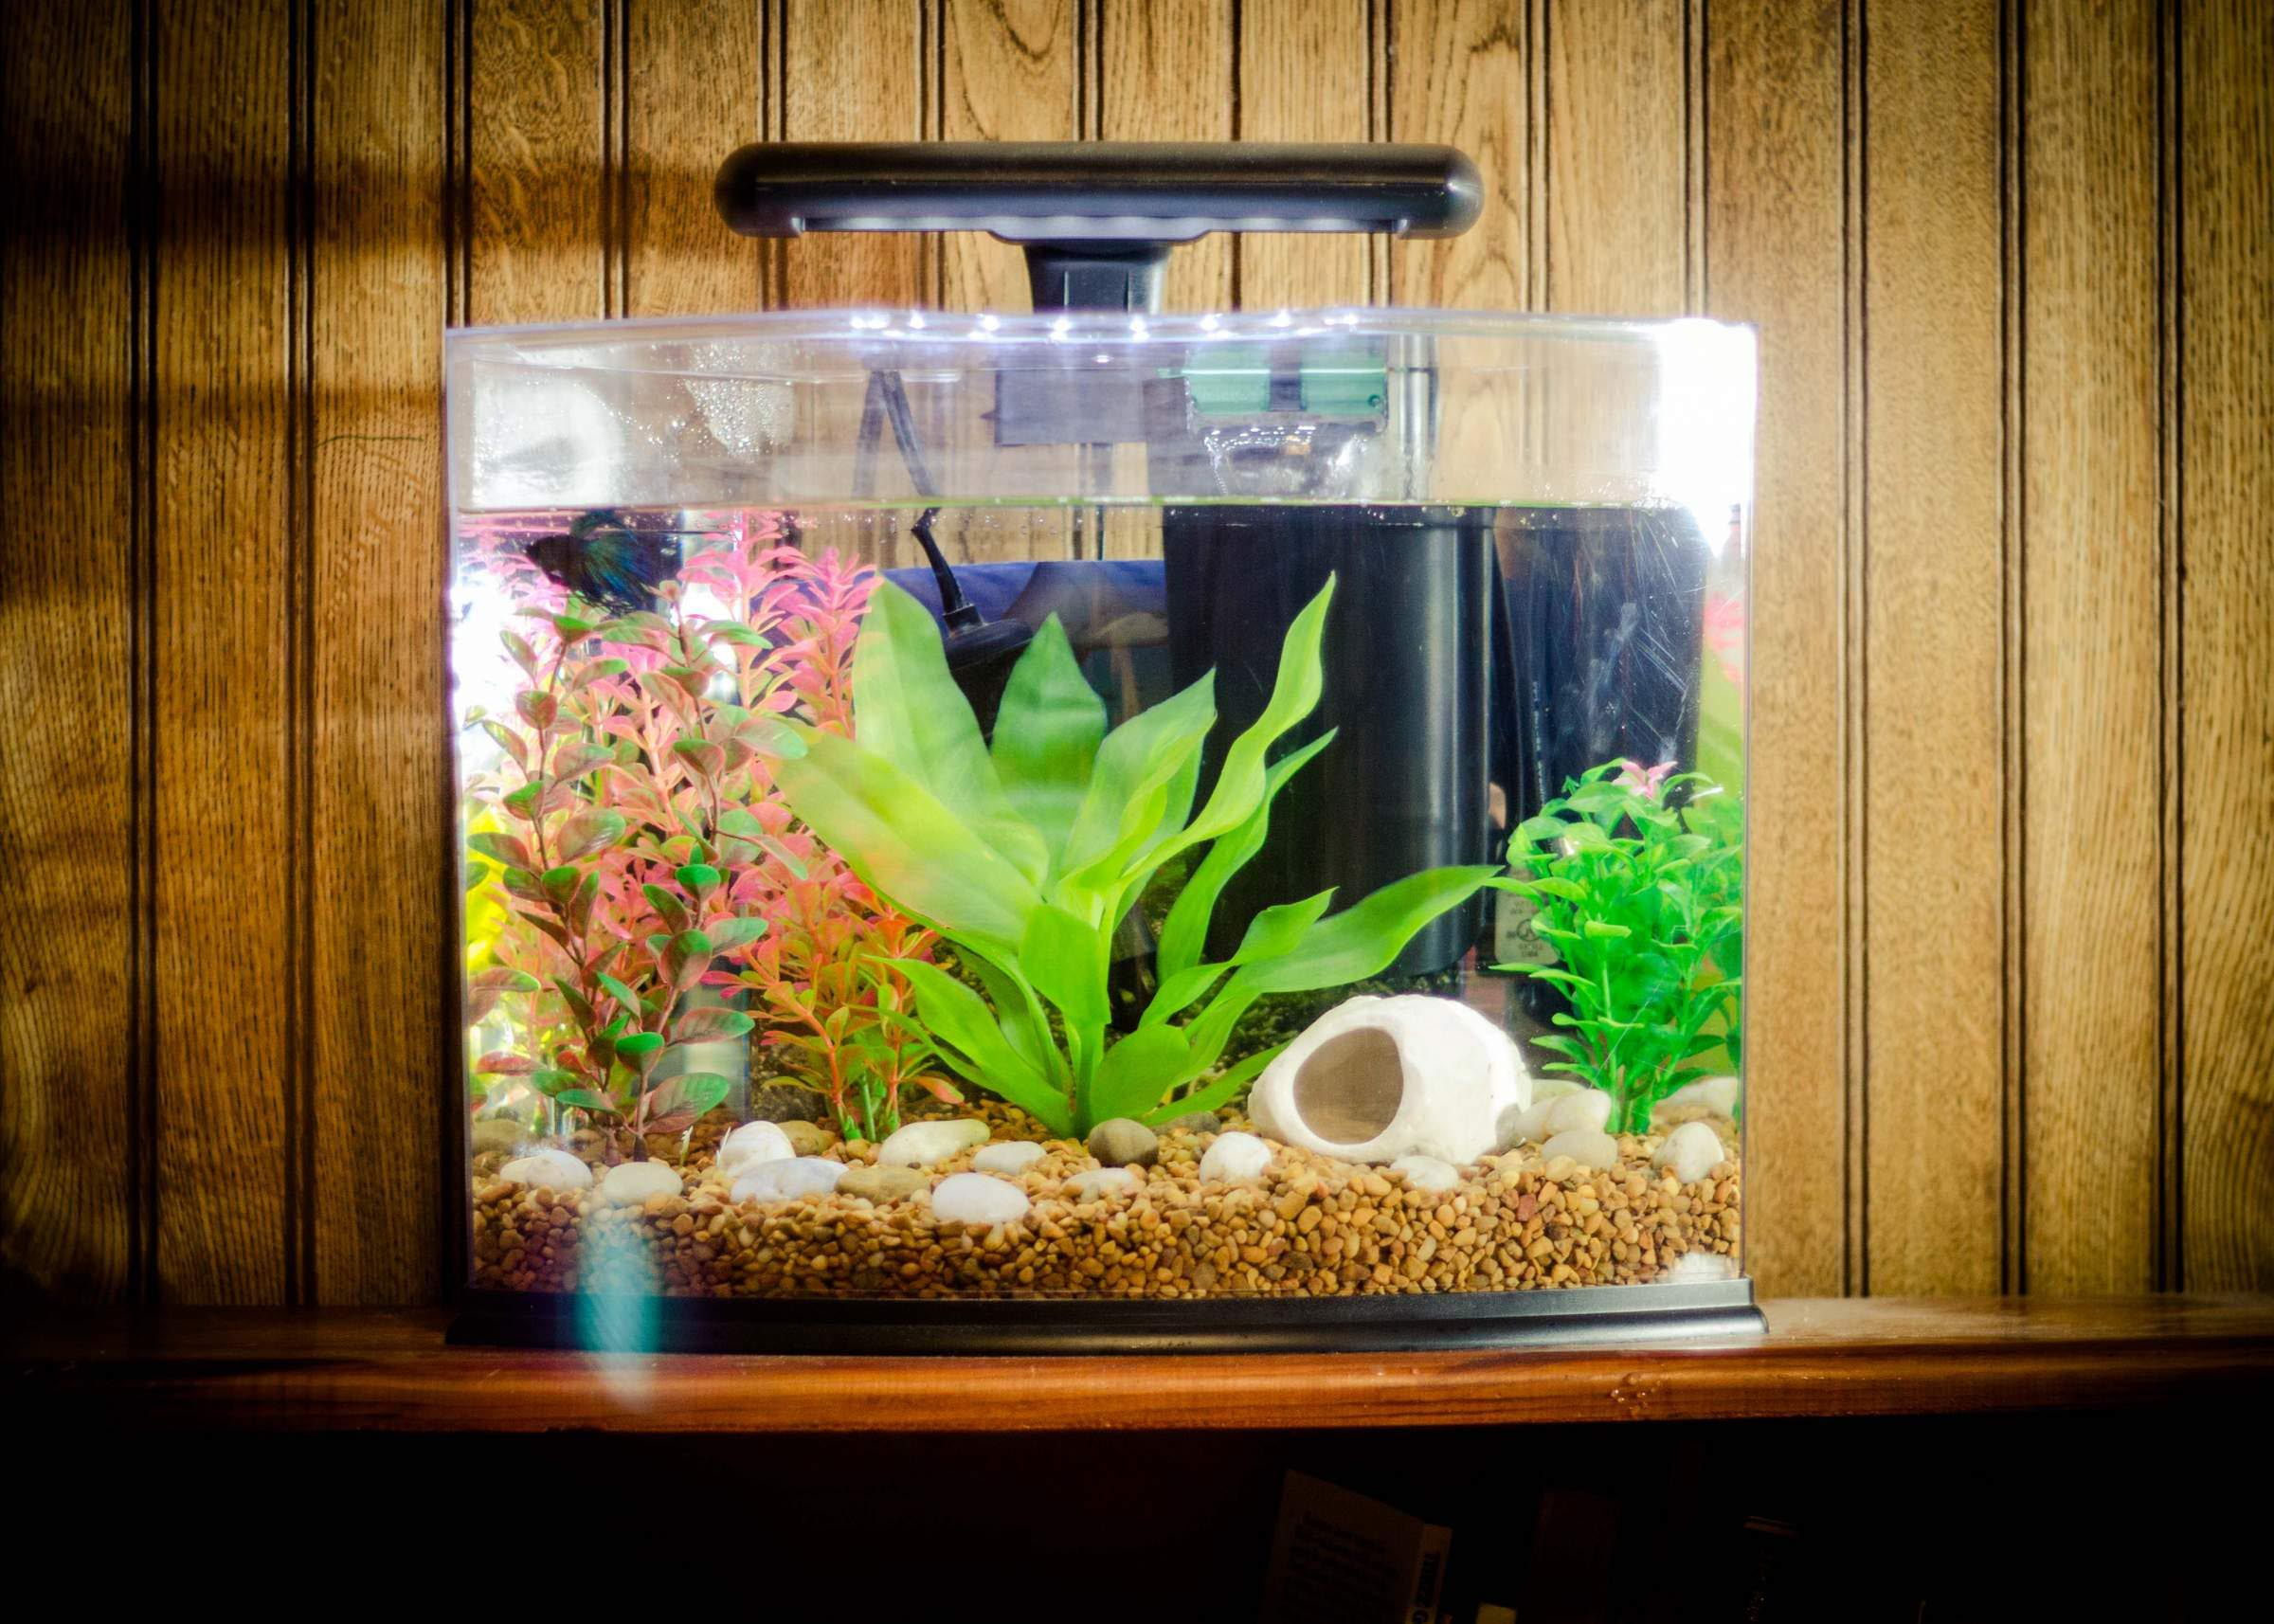 Betta fish aquarium ideas aquarium design ideas for Betta fish tank ideas